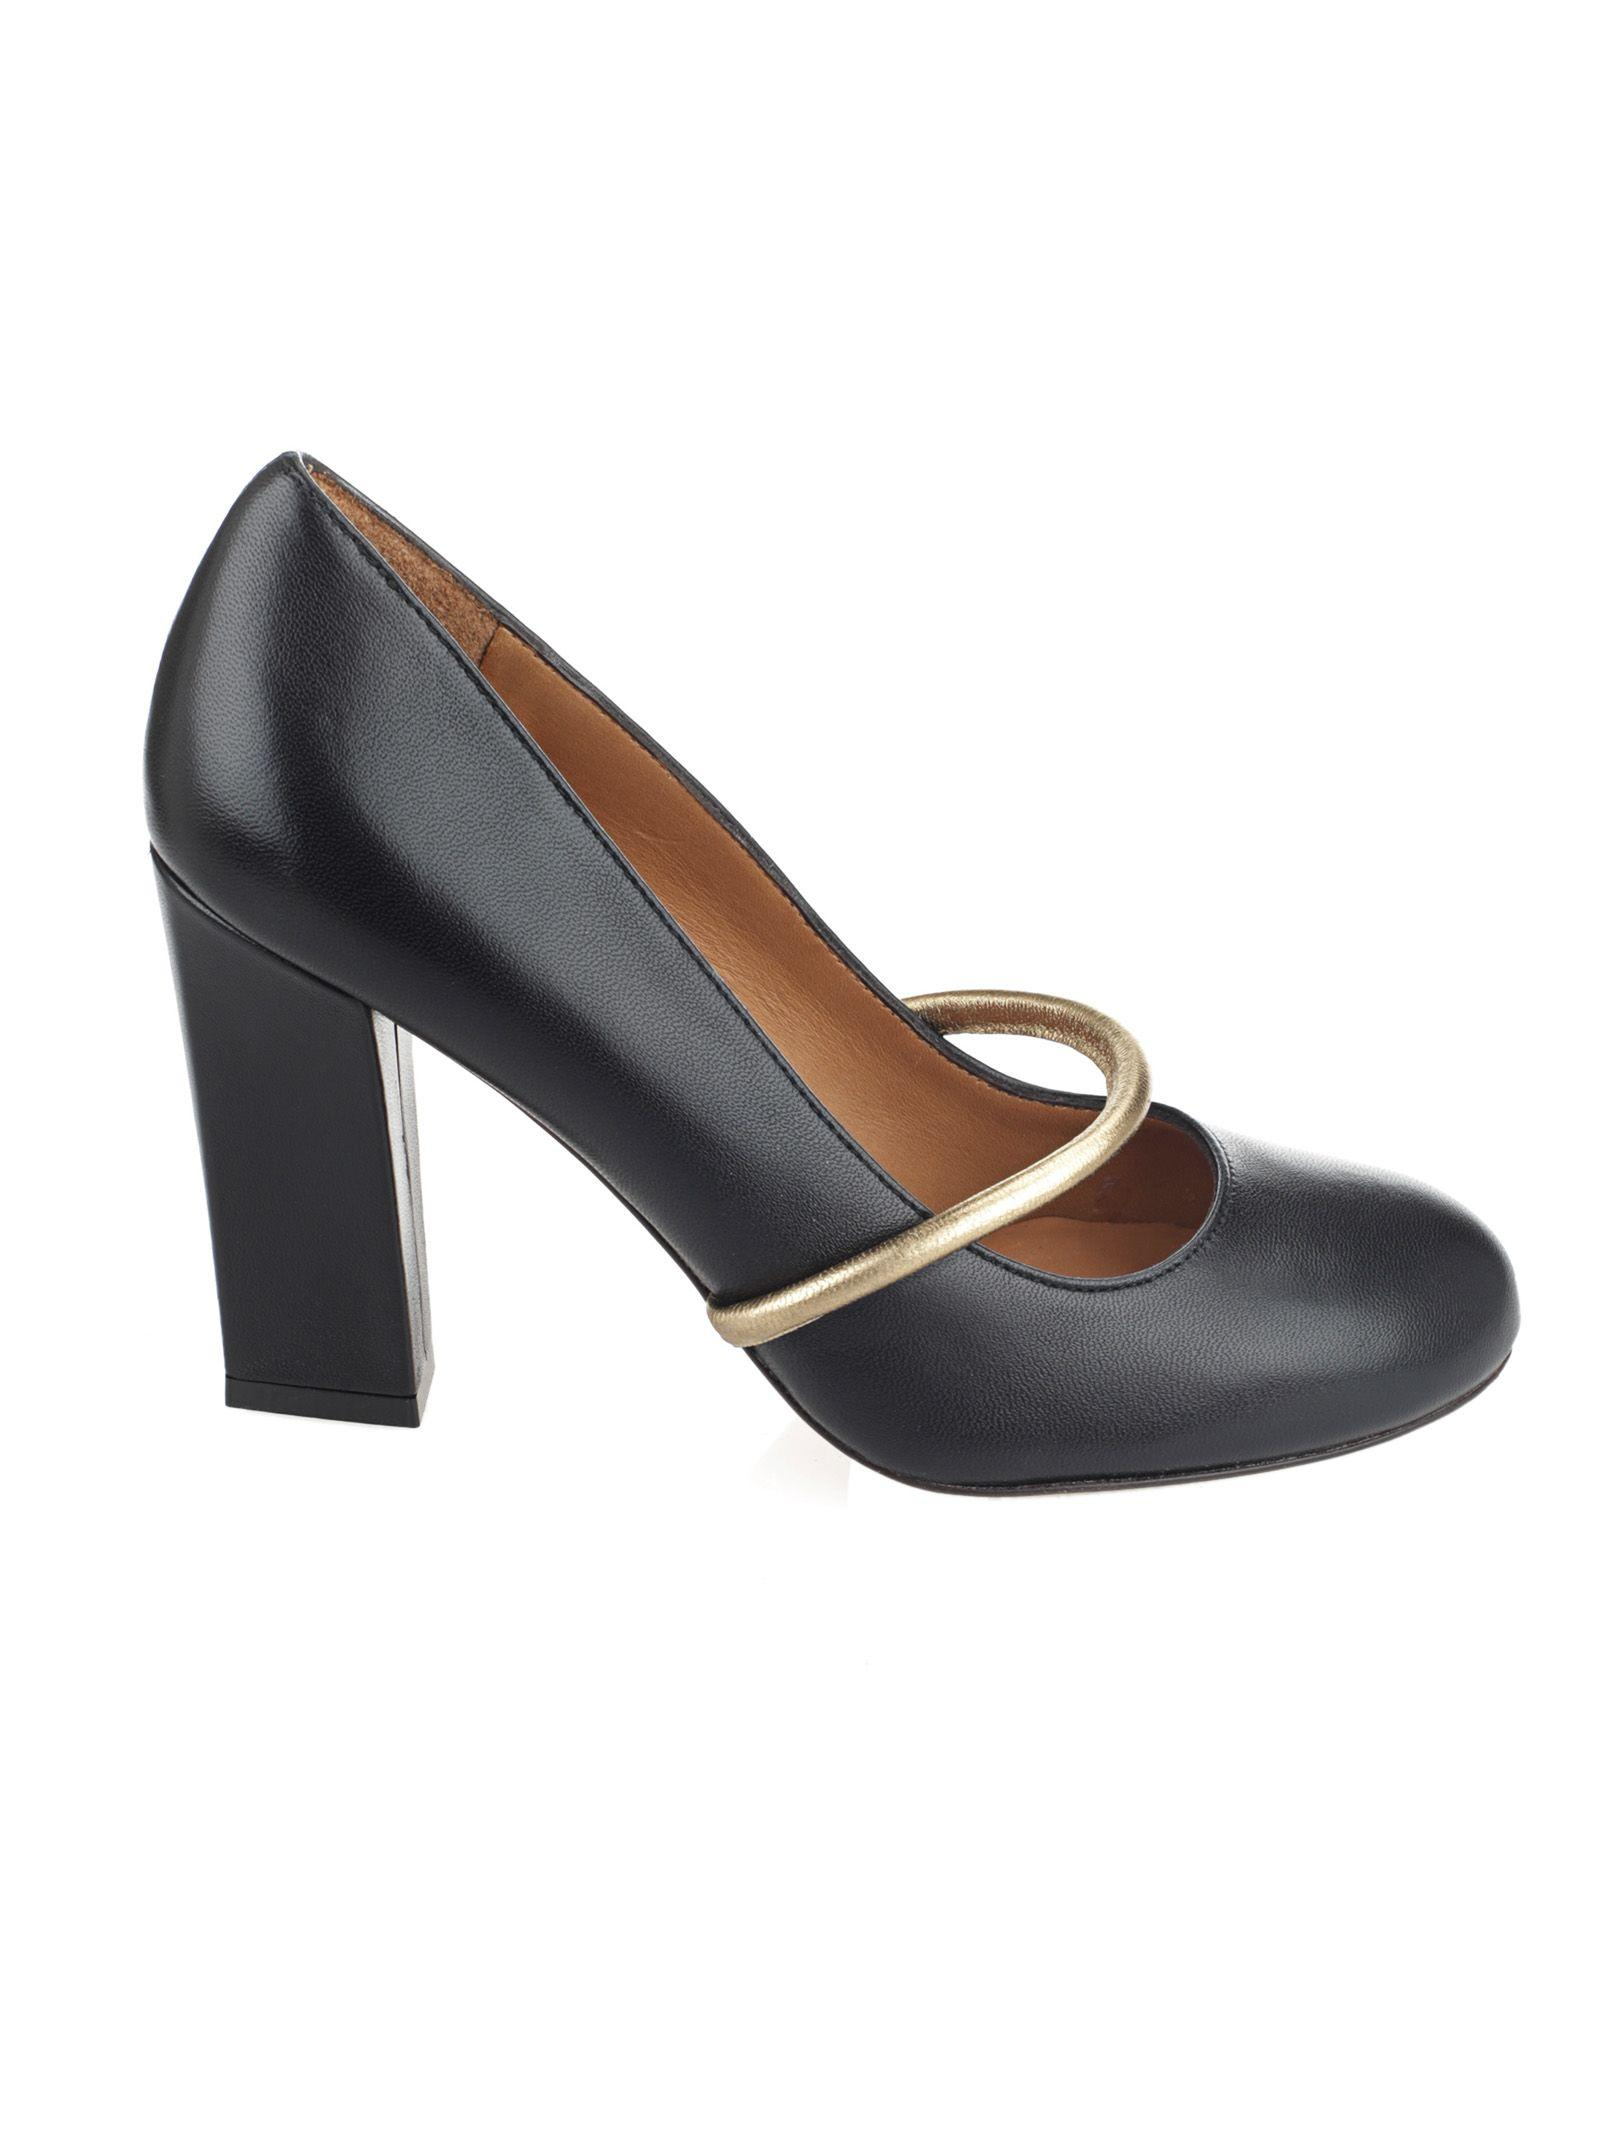 Chie Mihara Contrast Panel Pumps In Black